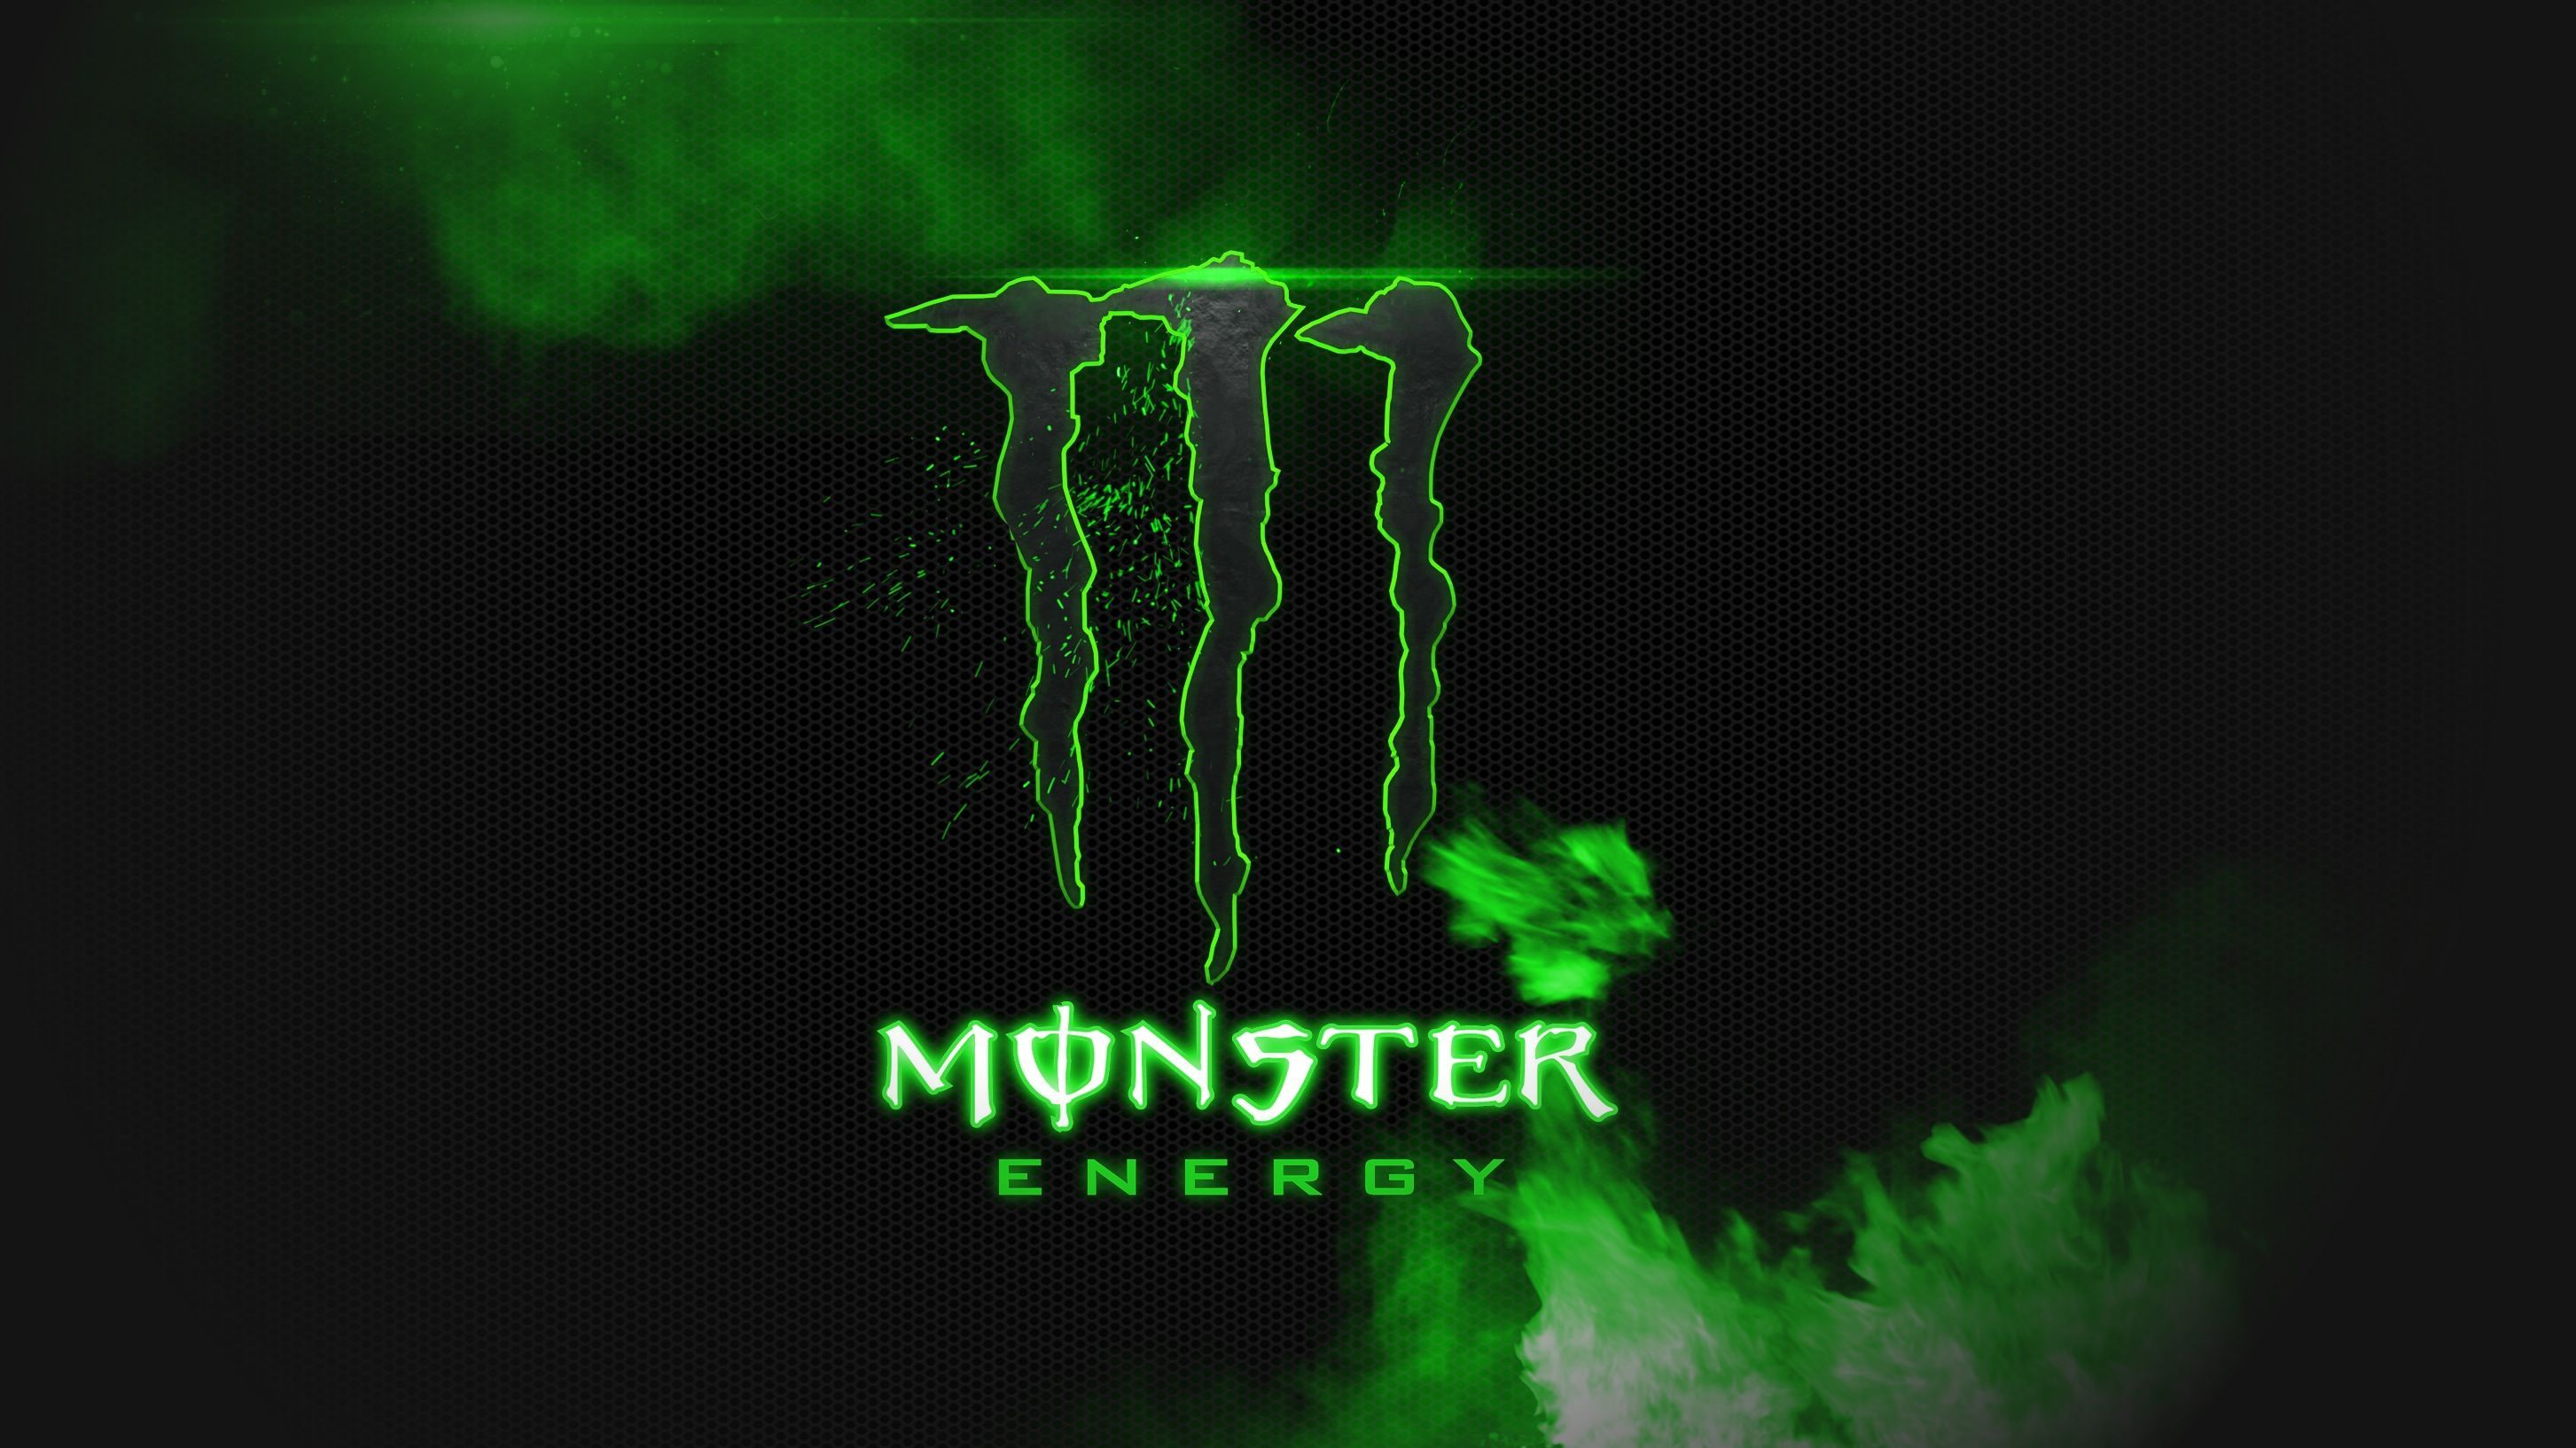 2906x1634 Monster Energy Black And Green HD Wallpaper Background Image | maria ...